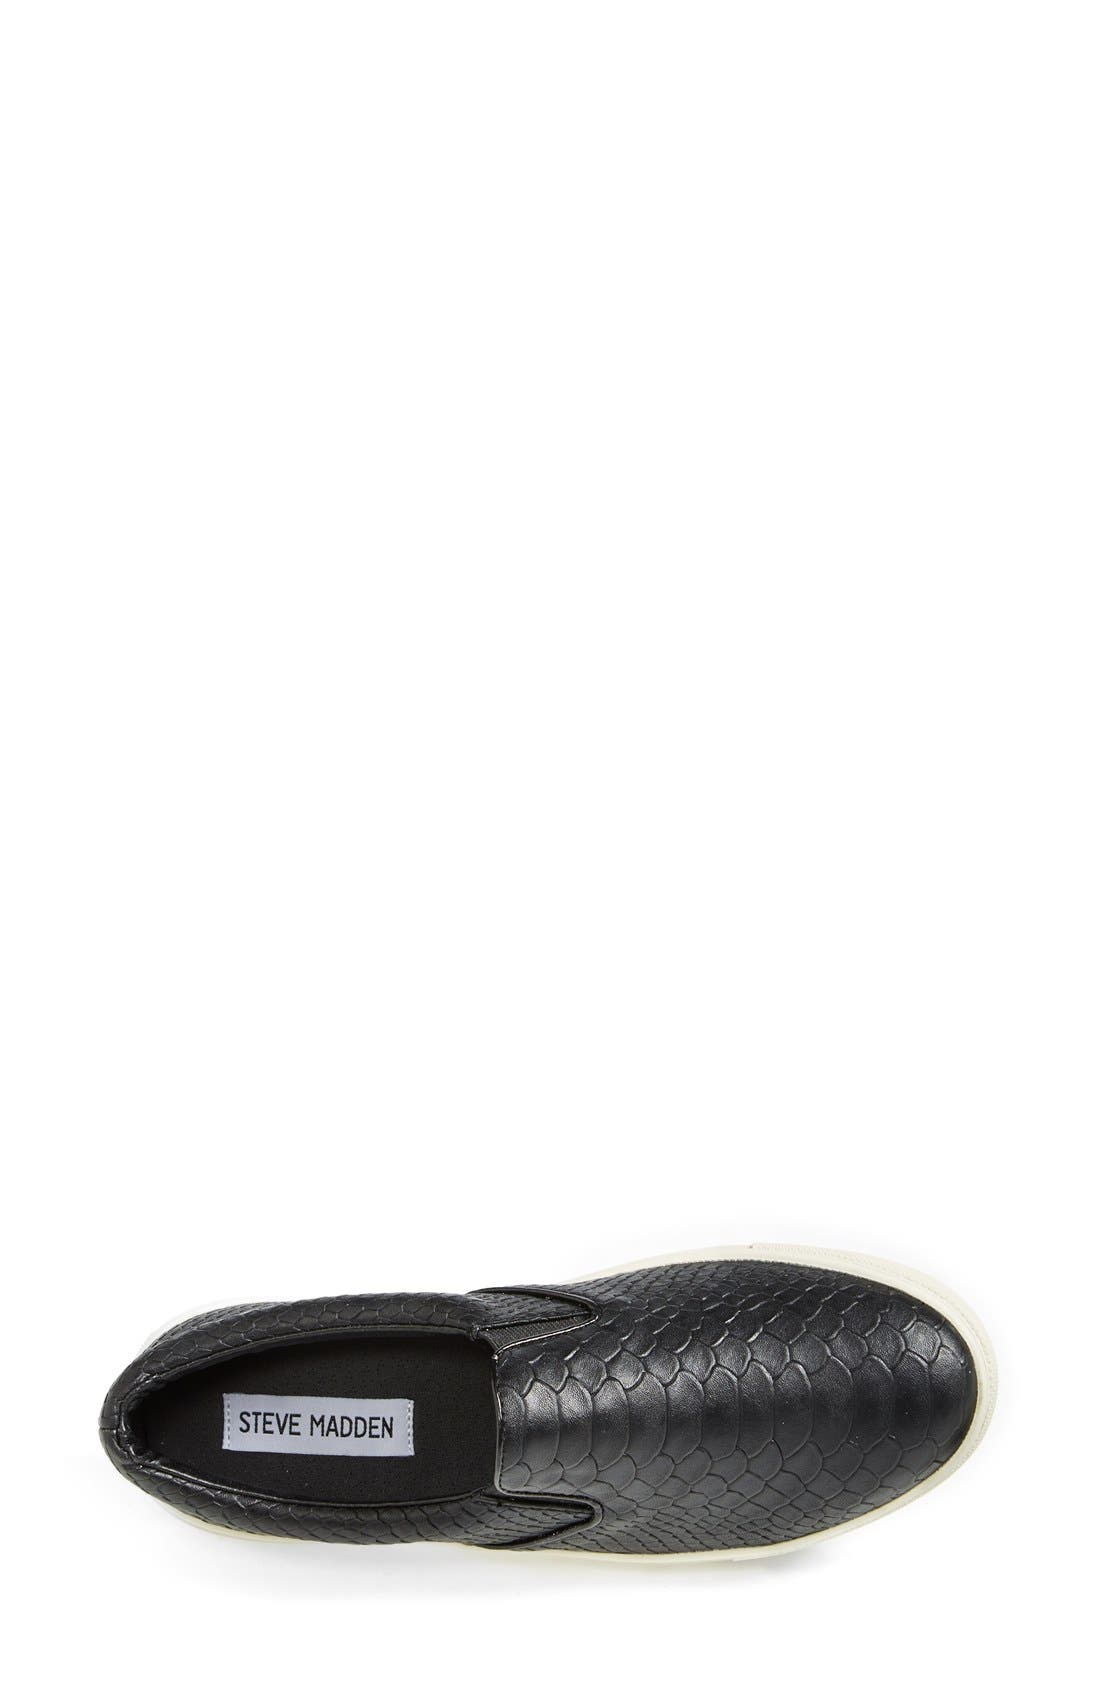 Alternate Image 3  - Steve Madden 'Ecntrc-c' Snake-Embossed Slip-On Sneaker (Women)